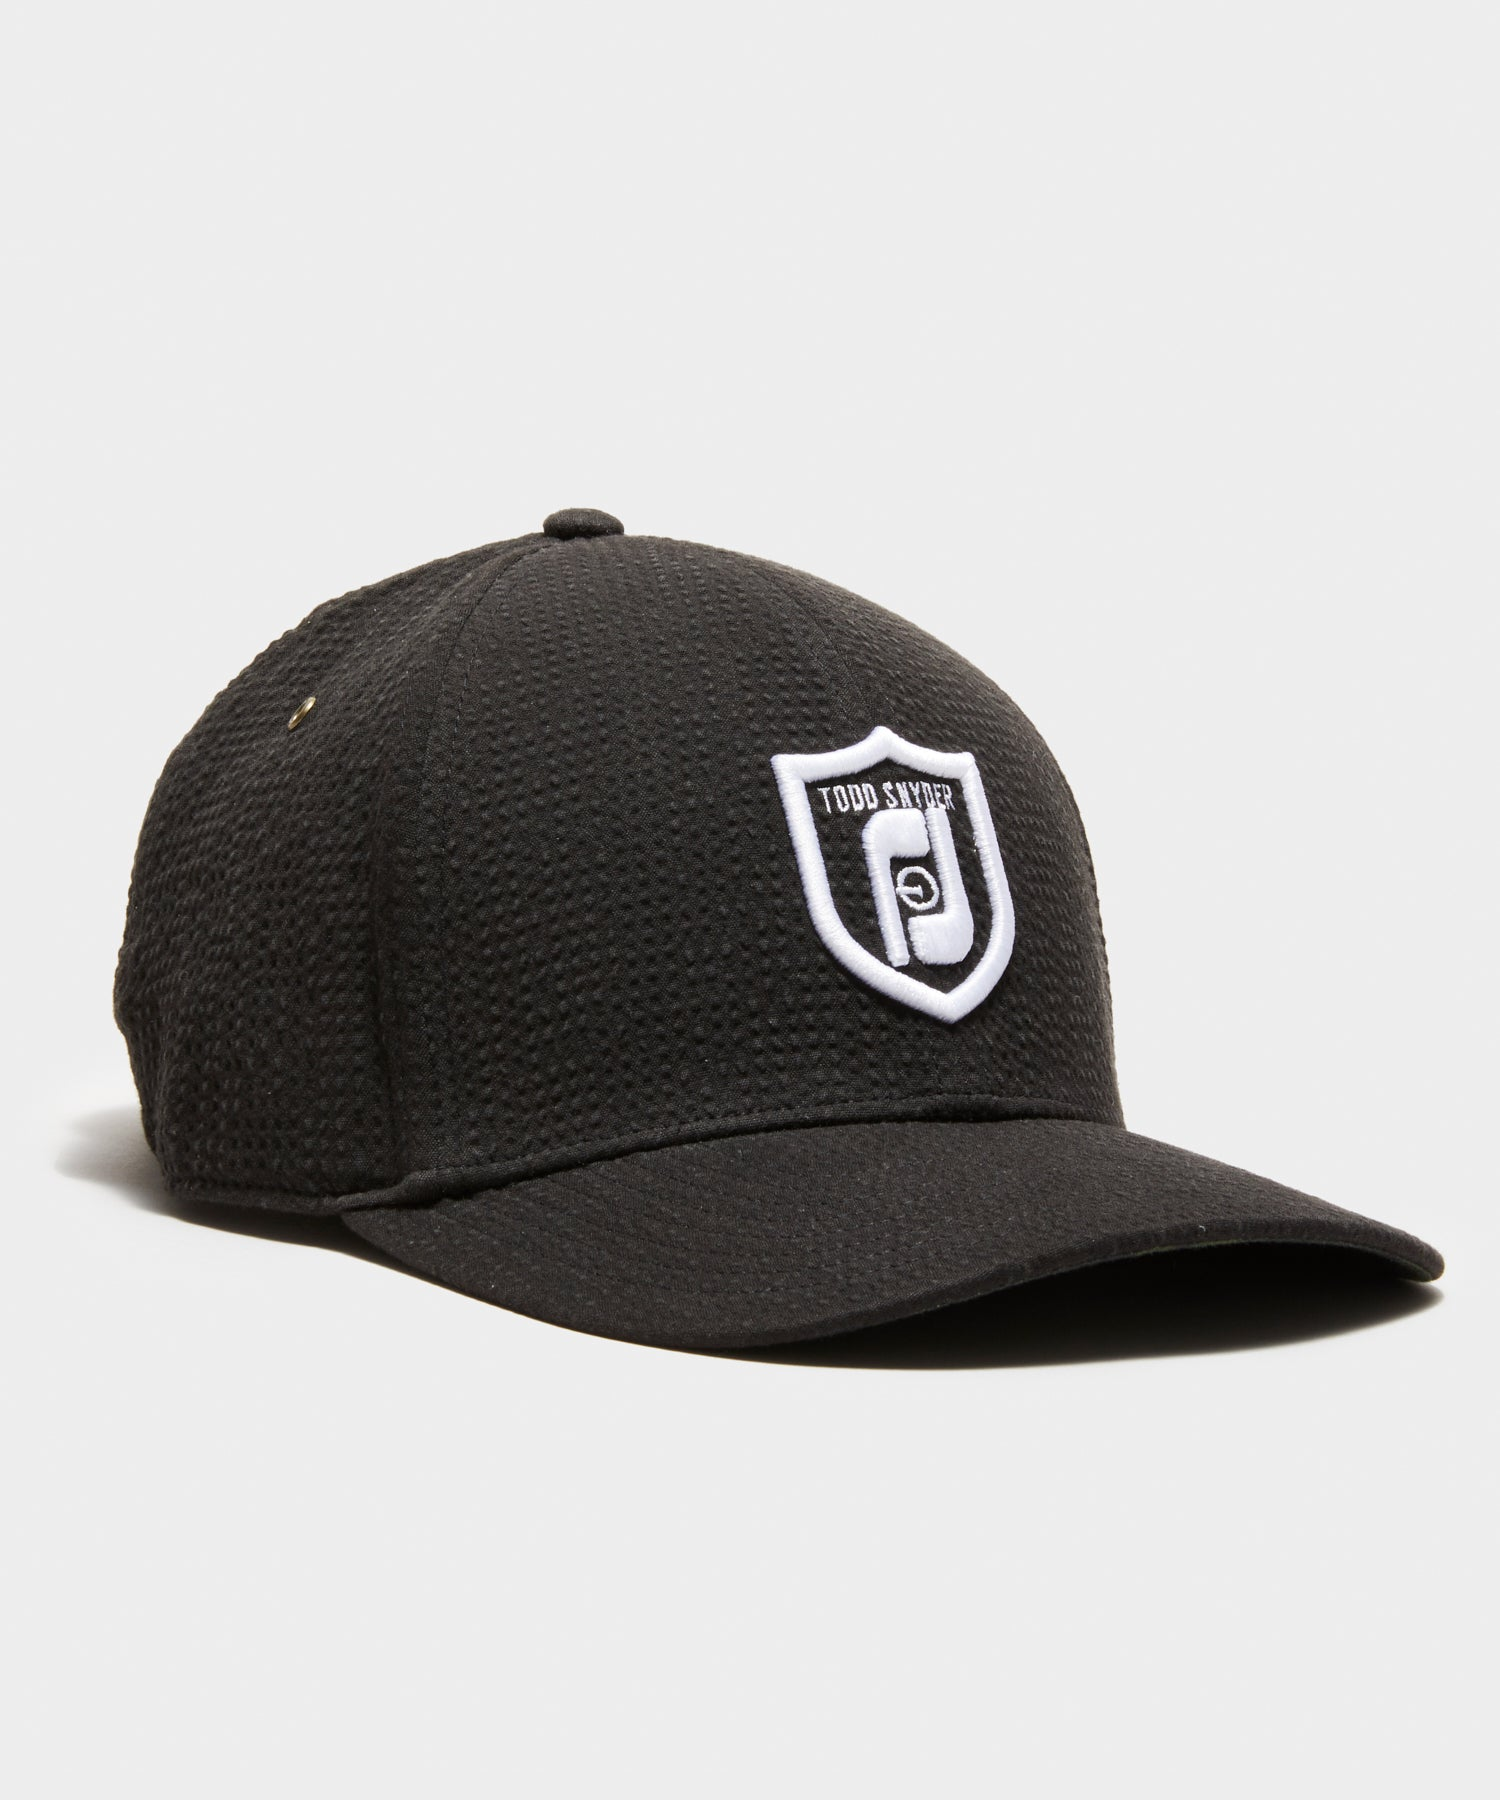 Footjoy x Todd Snyder Seersucker Cap in Black